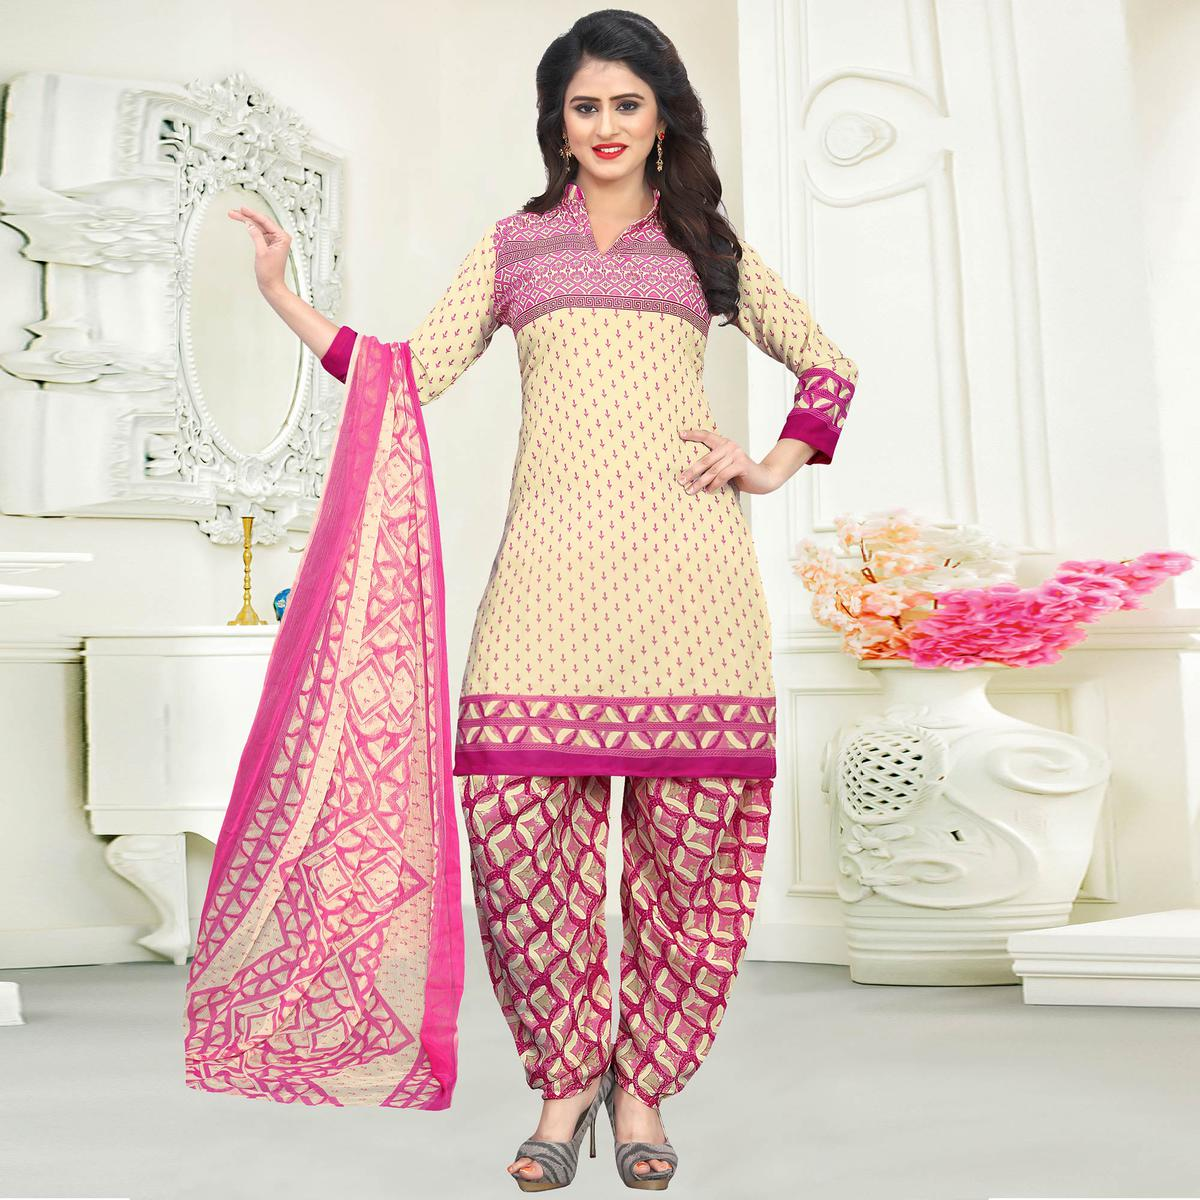 Ravishing Cream Colored Casual Wear Printed Crepe Salwar Suit